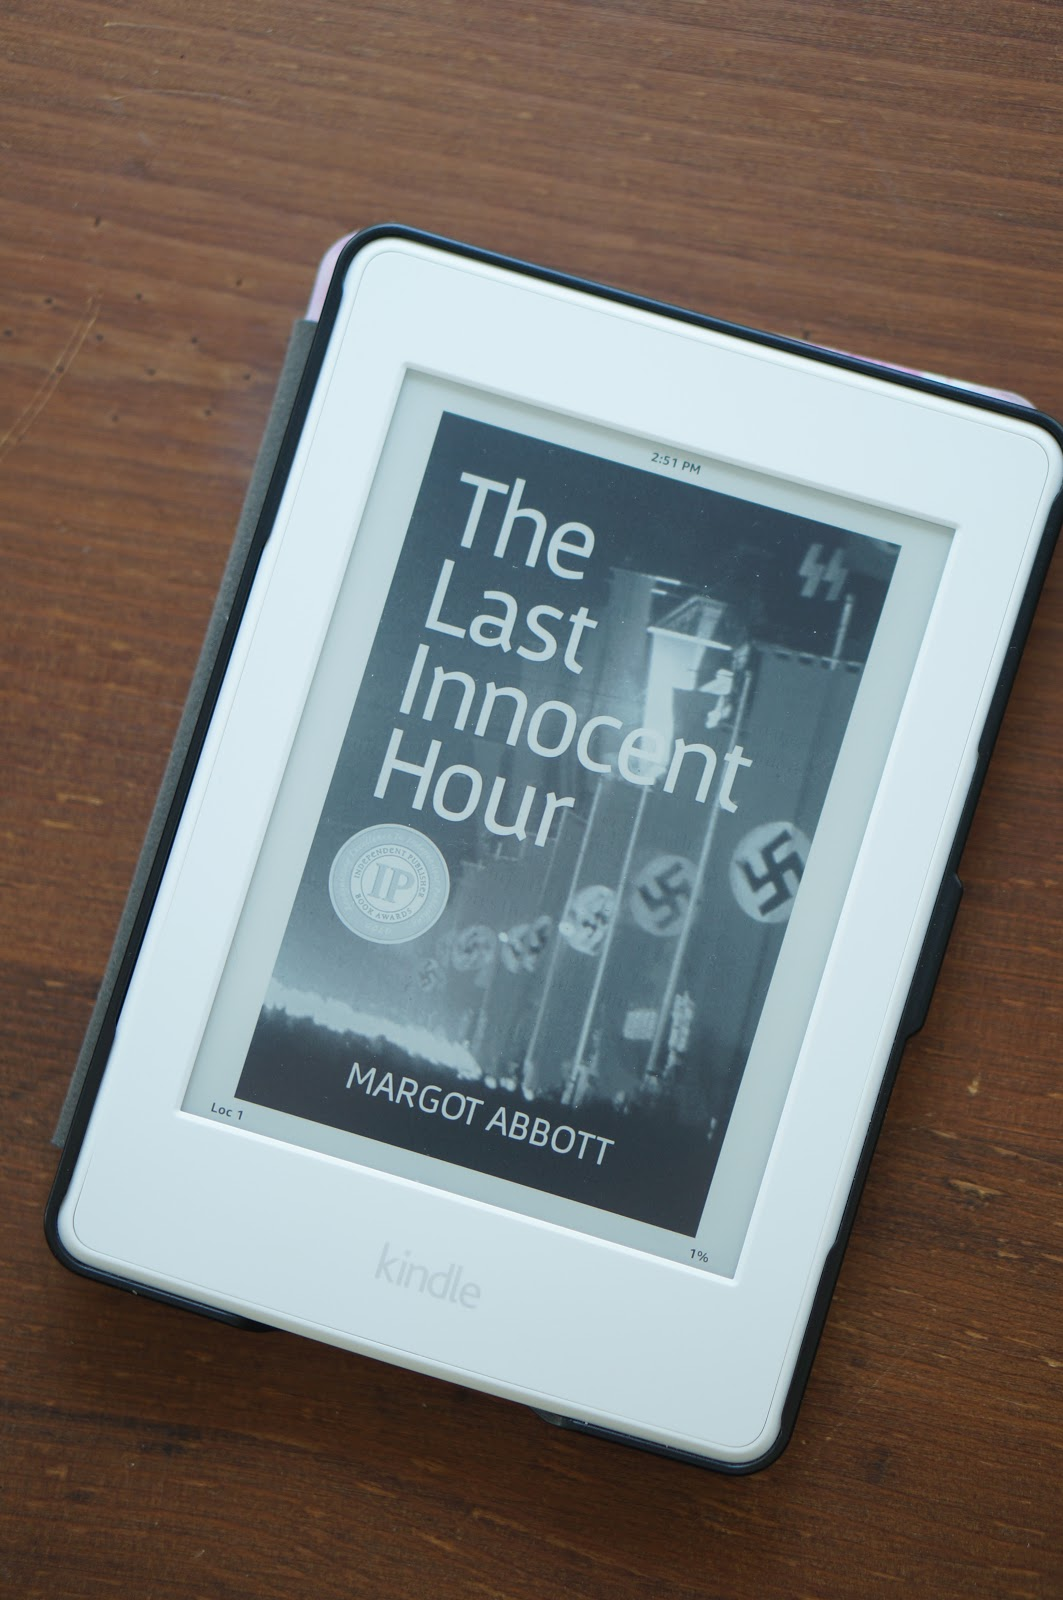 North Carolina style blogger Rebecca Lately shares a review of The Last Innocent Hour by Margot Abott.  Check out this sweeping historical fiction!